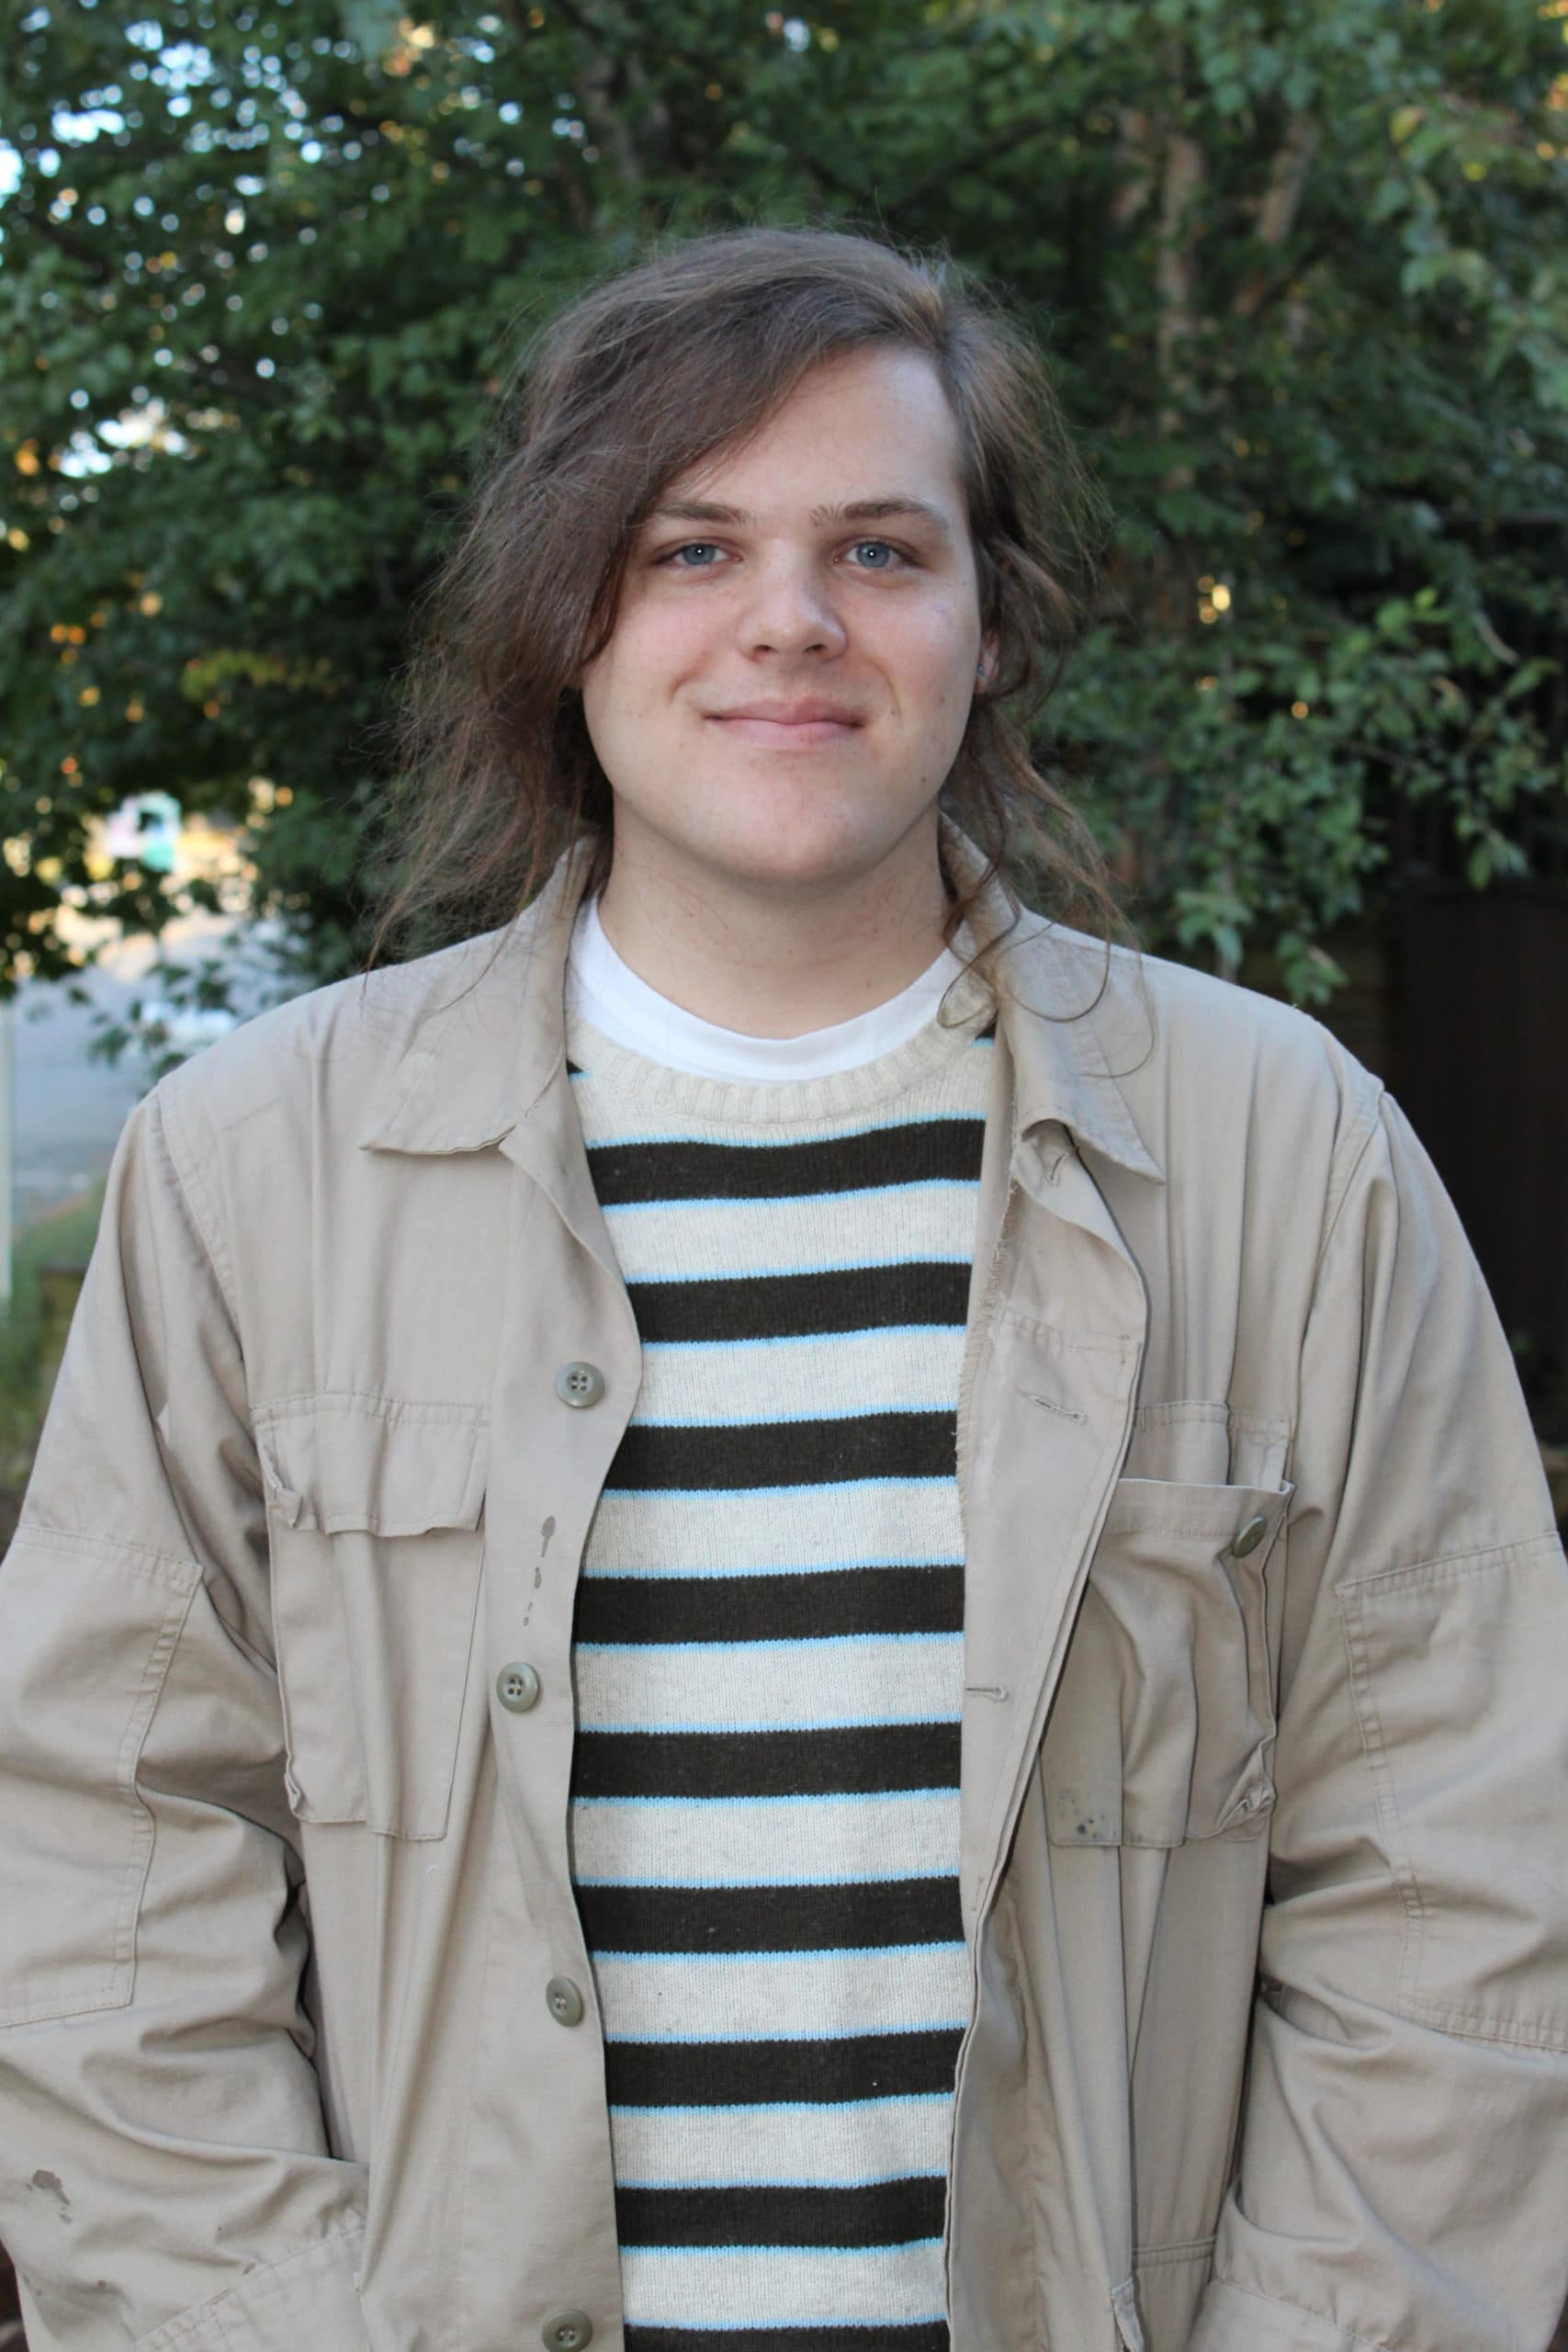 Shane smiles with no teeth, tree, stripes, jacket